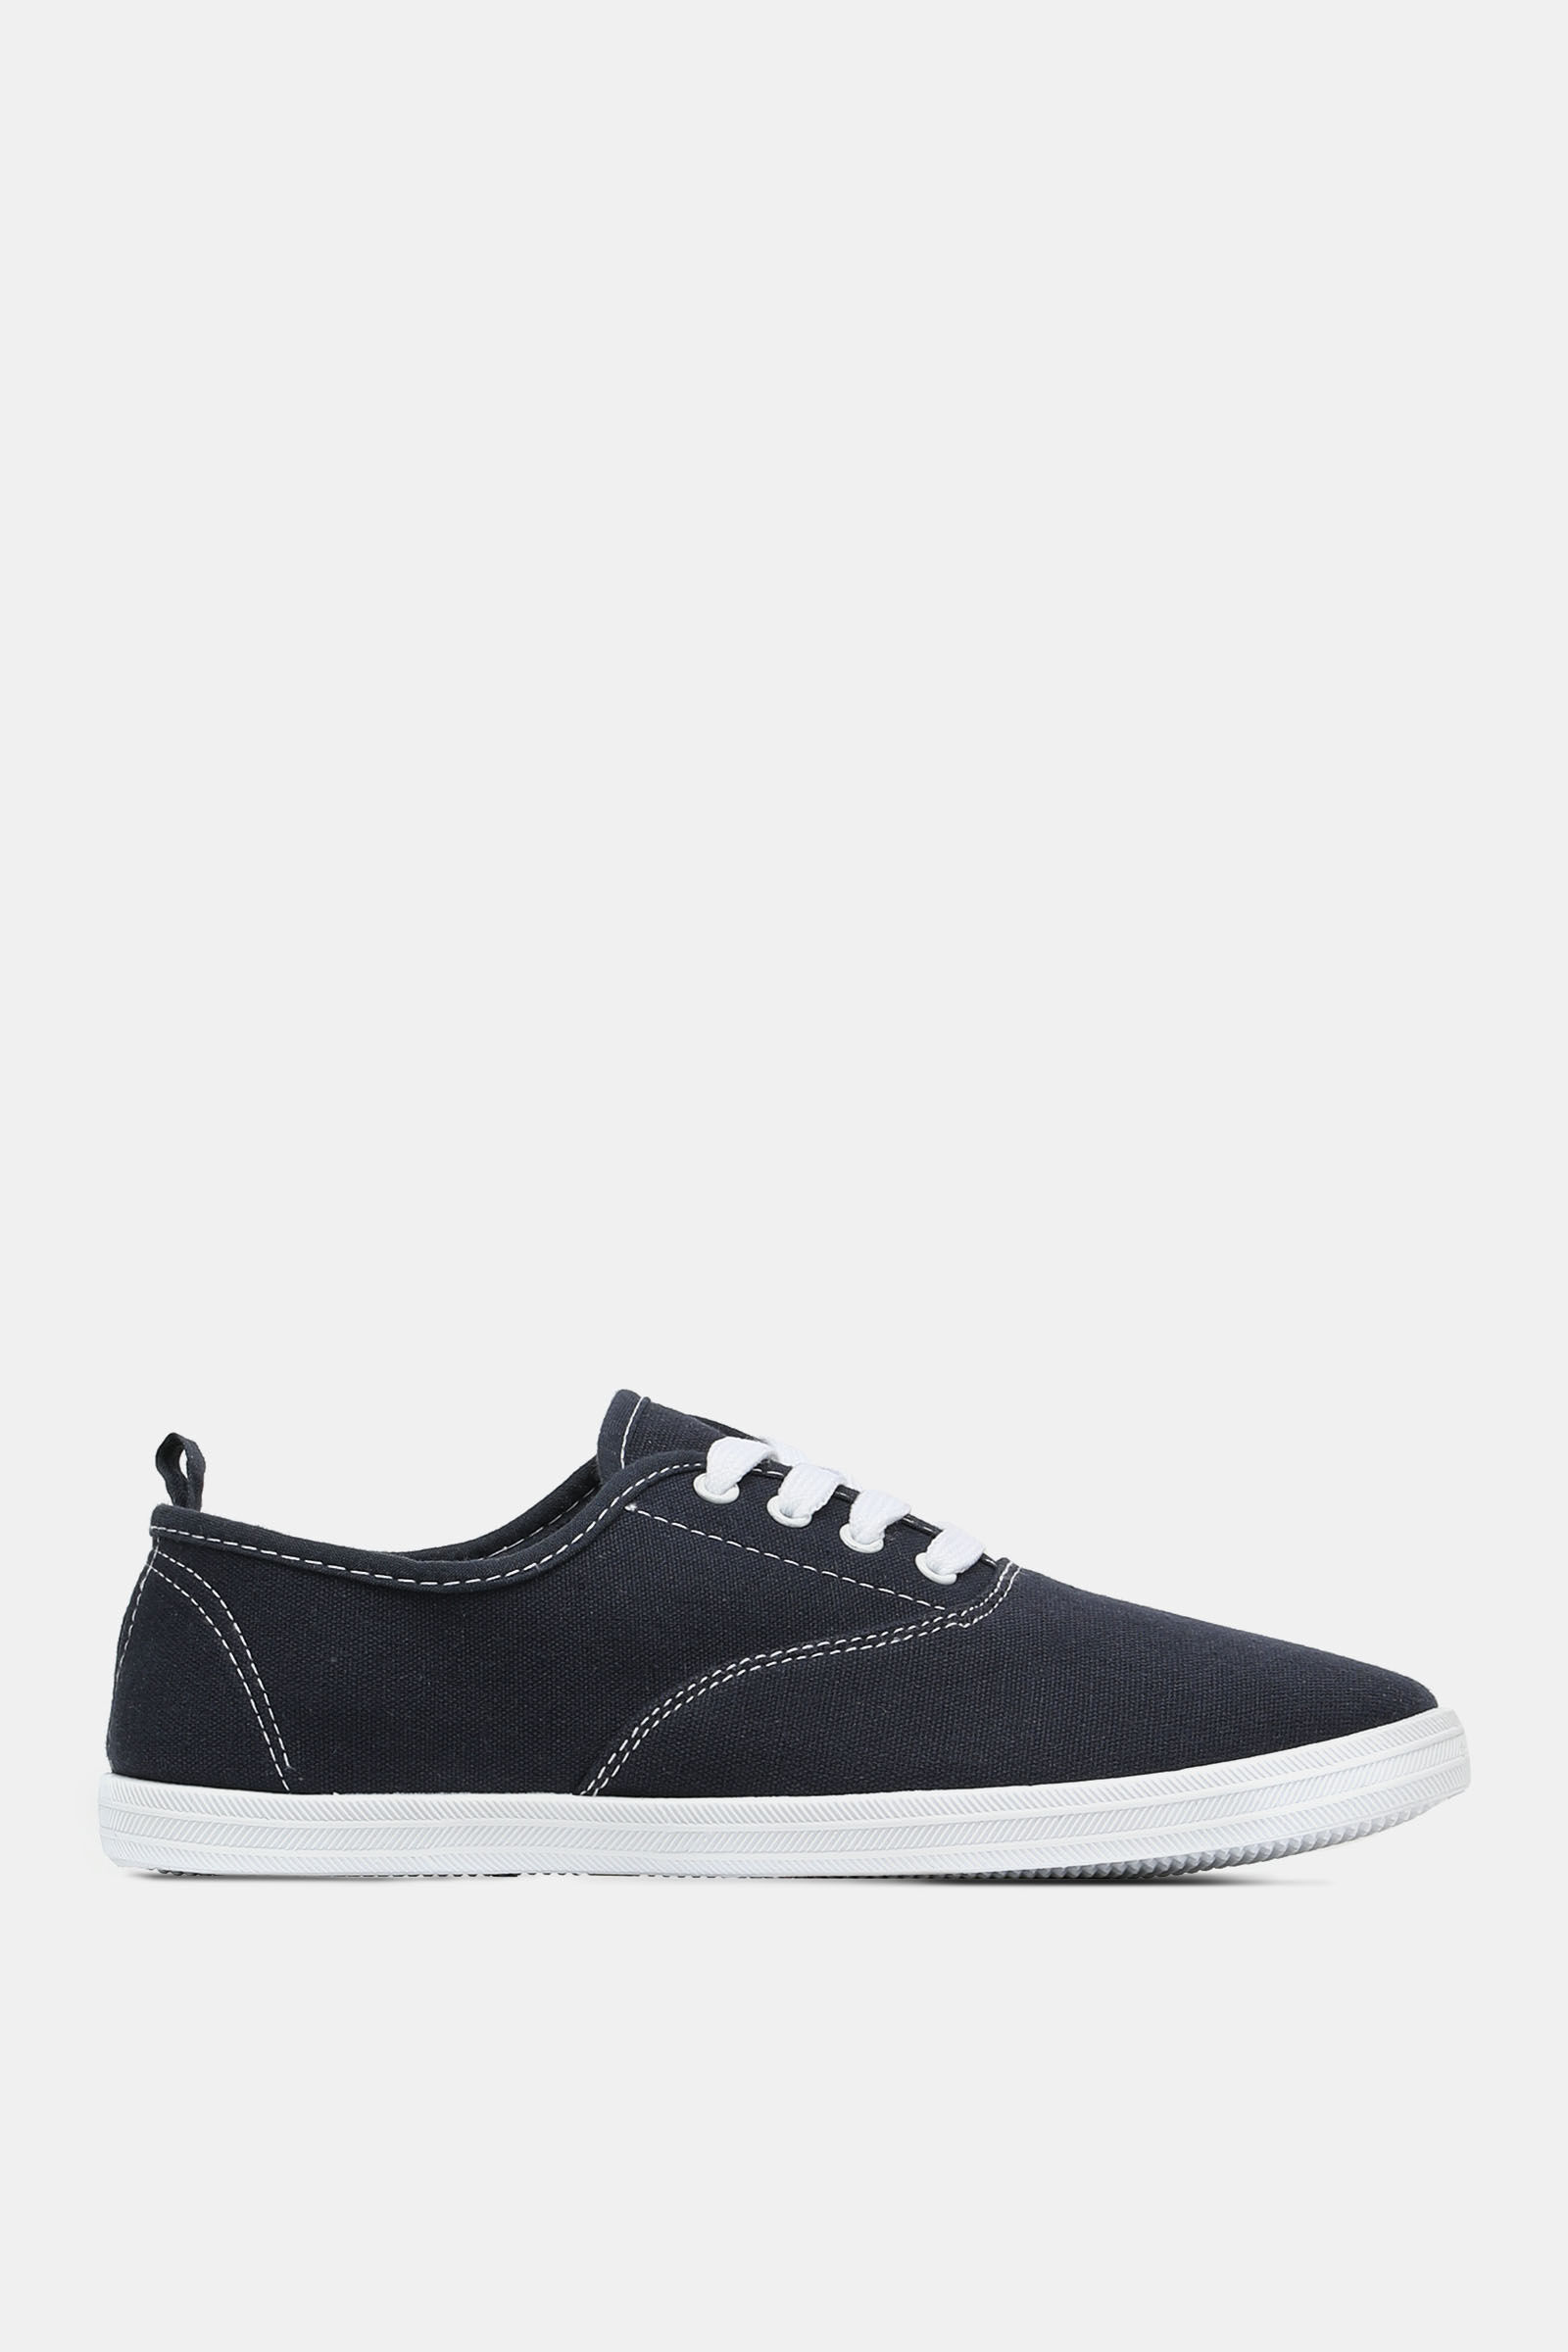 Basic Canvas Sneakers - Shoes   Ardene